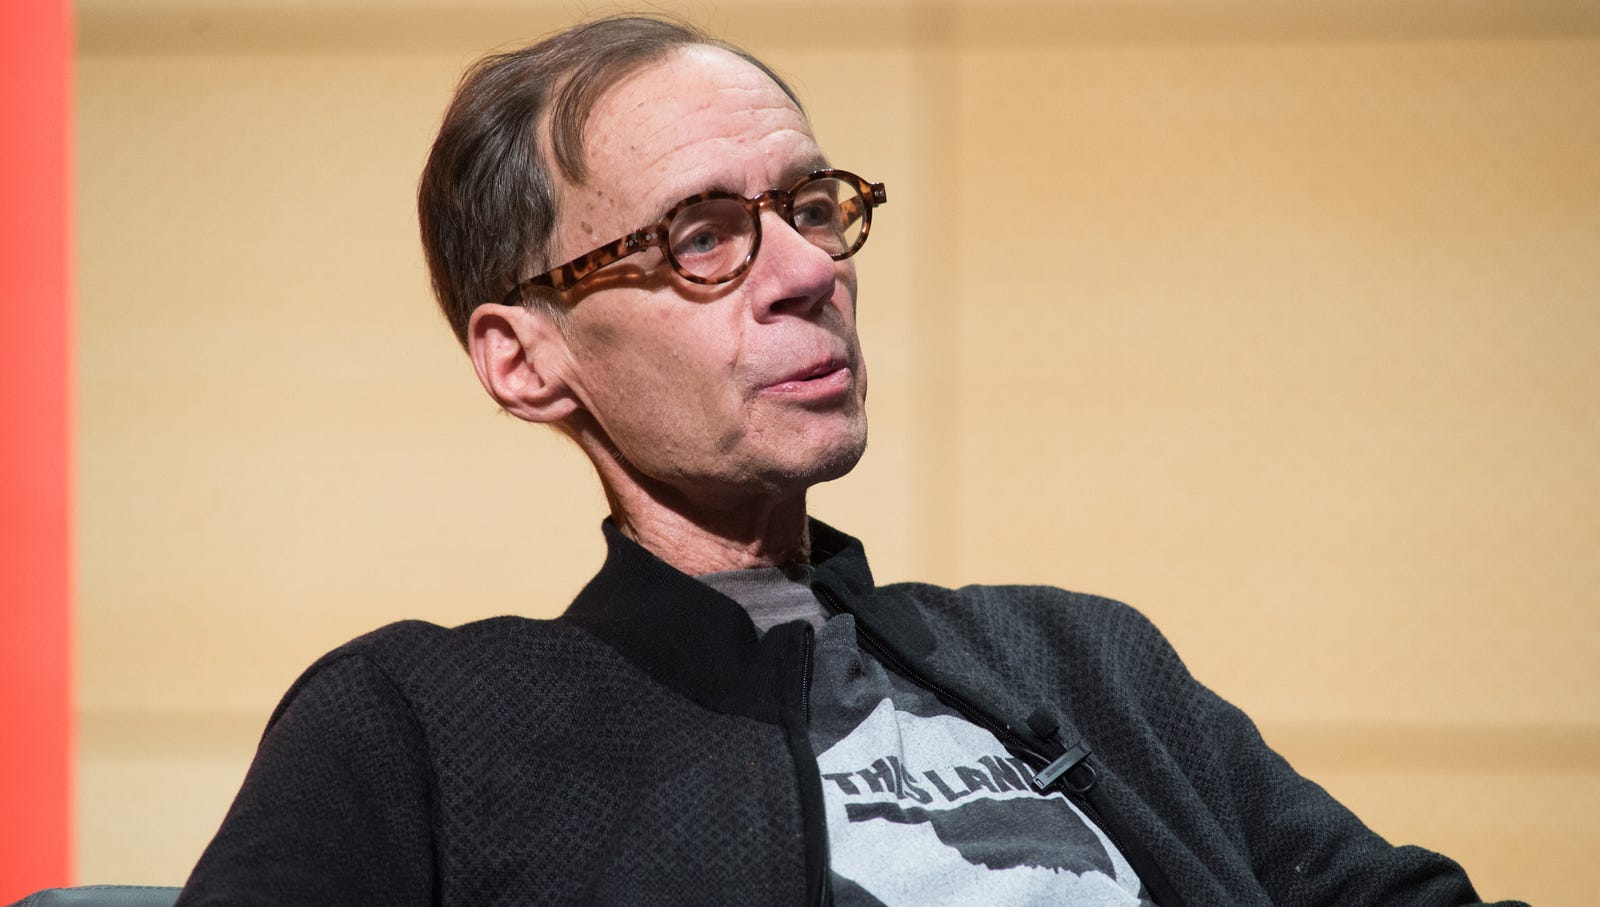 David Carr: The acclaimed writer died this year alongside his beloved investigative journalism.